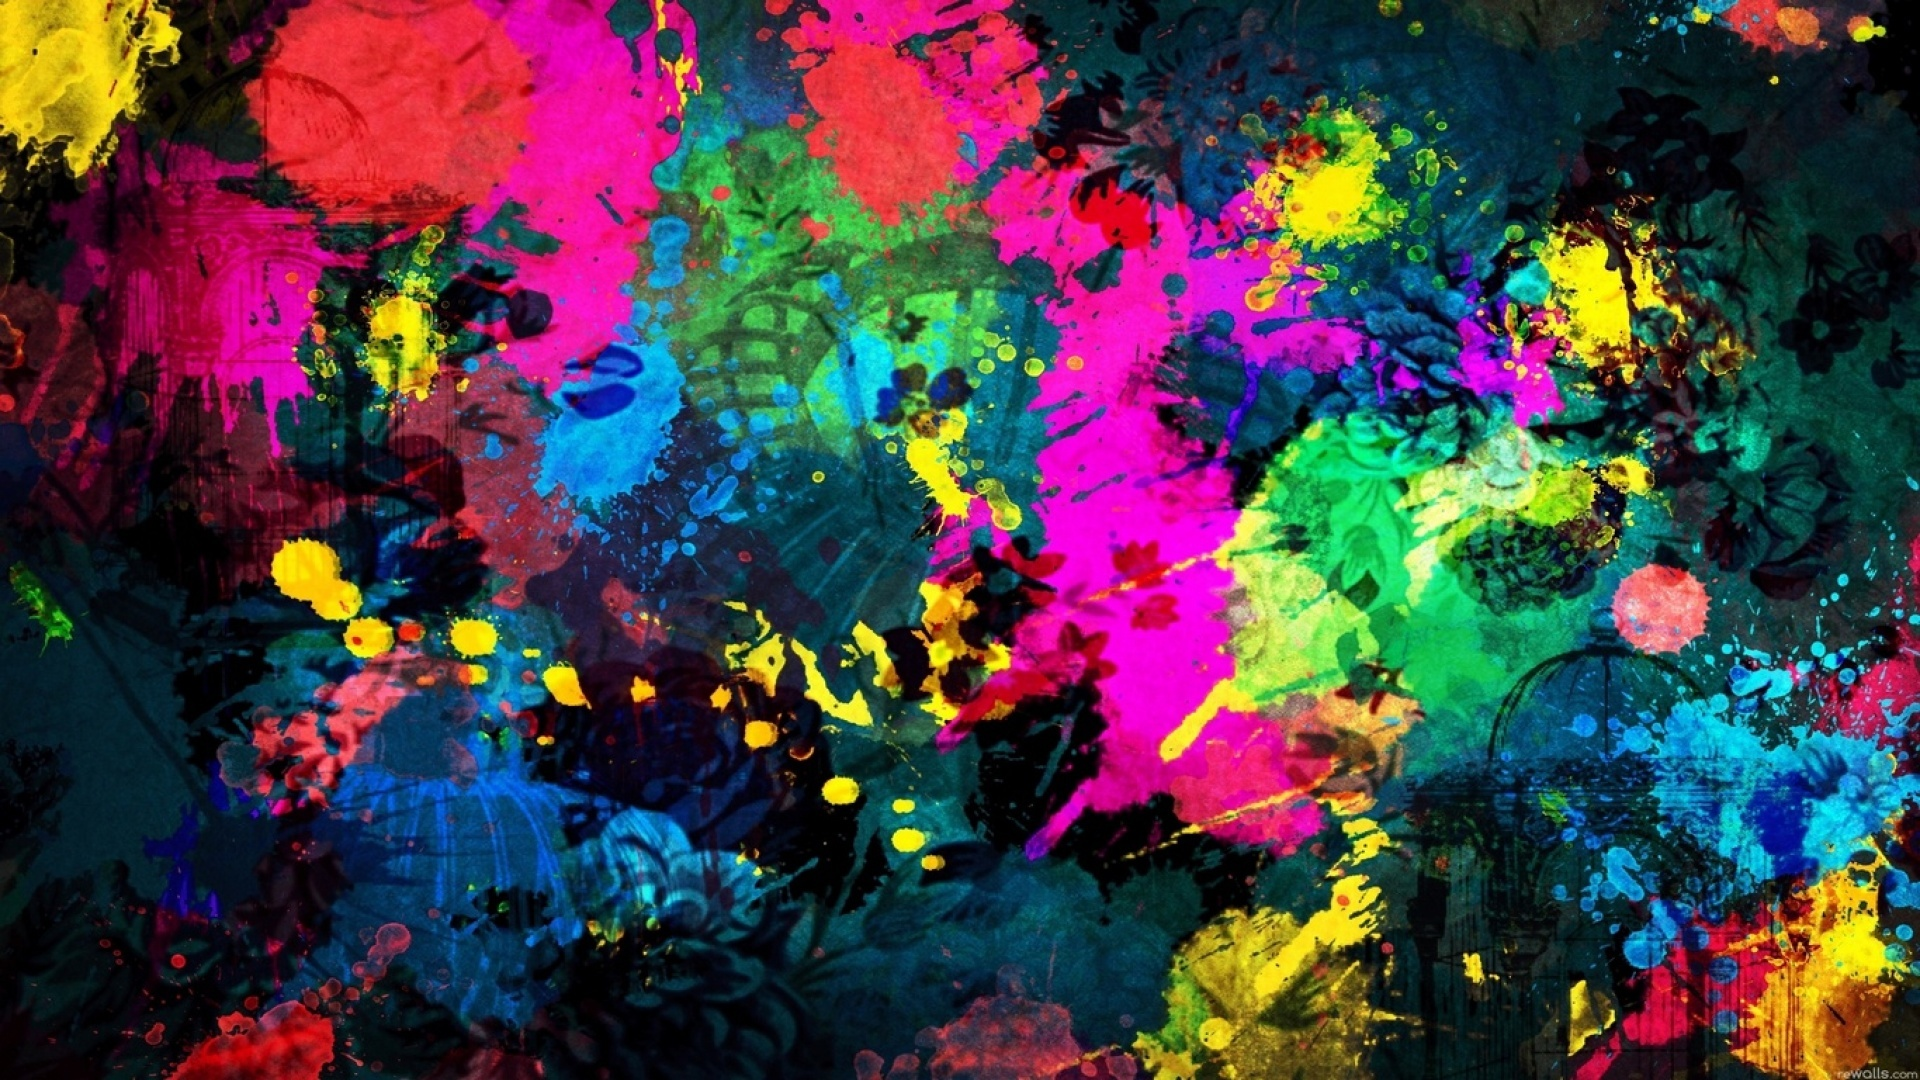 18755 download wallpaper Abstract, Background screensavers and pictures for free